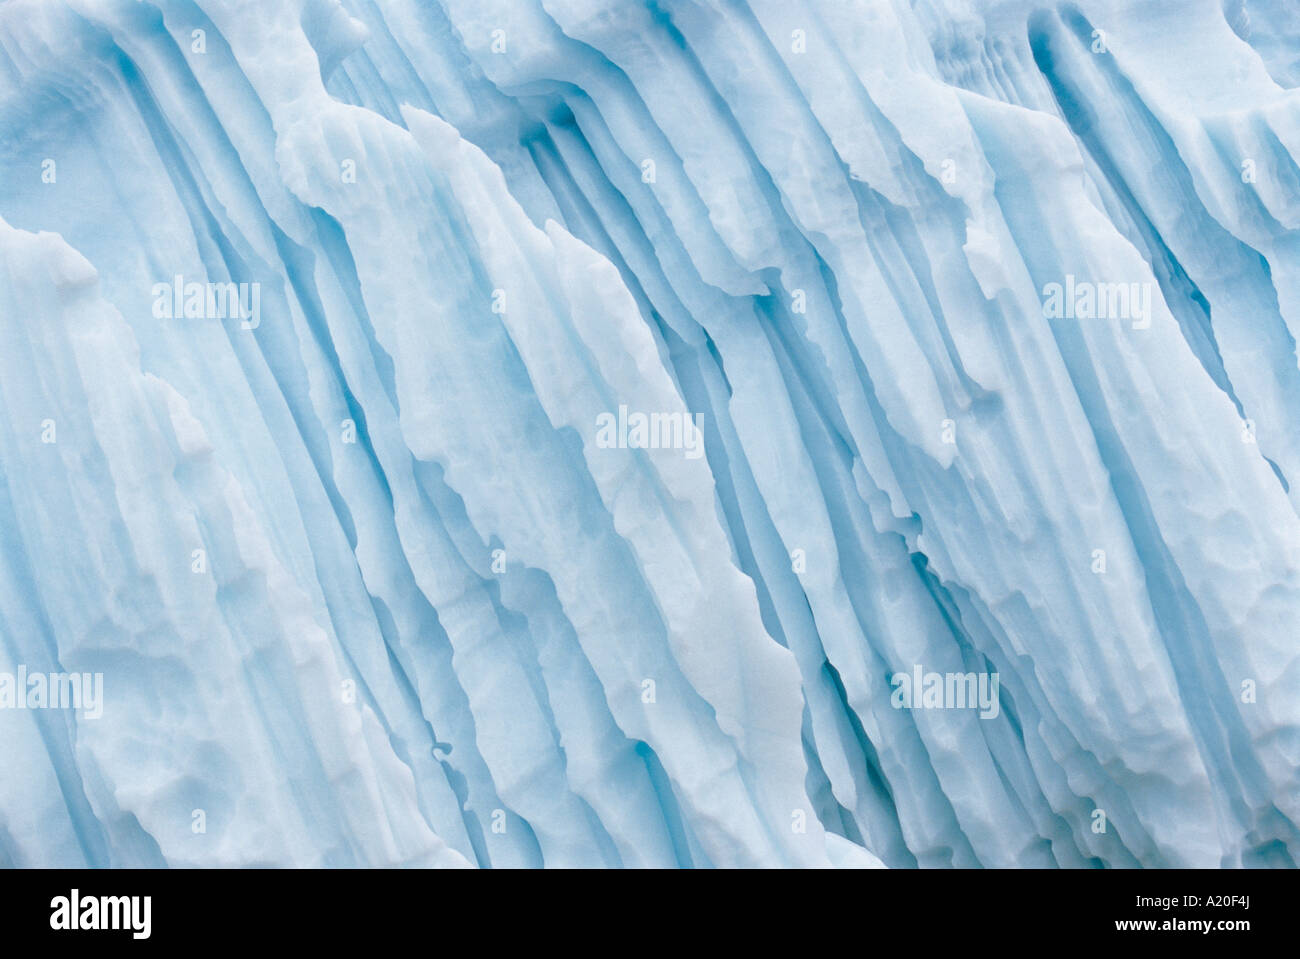 Formation de glace Photo Stock